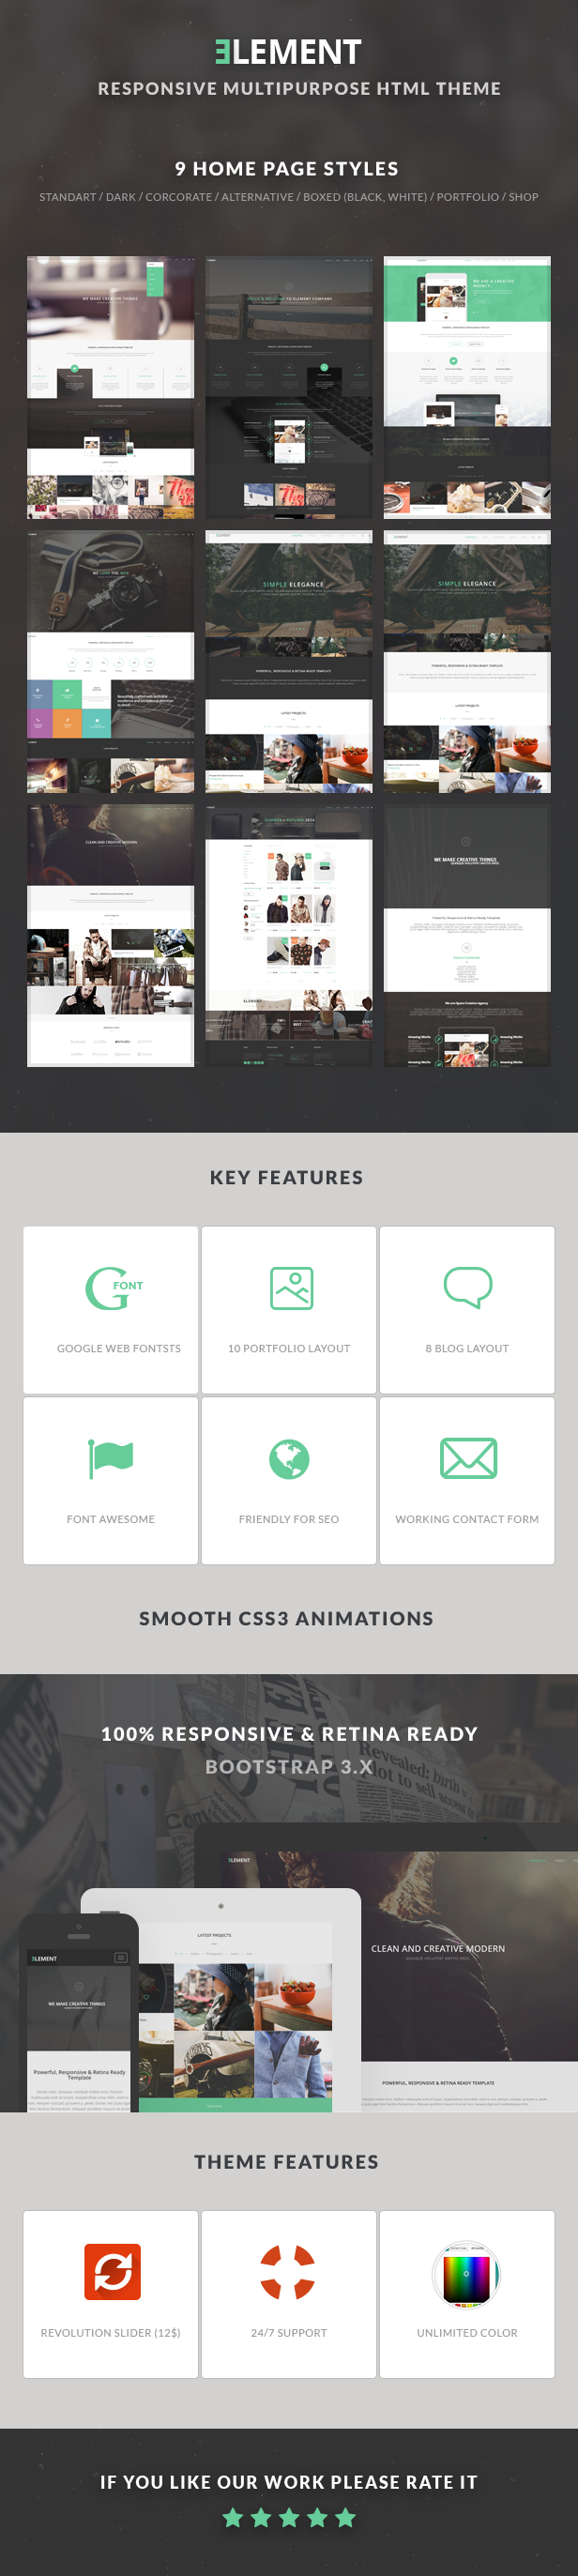 ELEMENT - Multipurpose HTML5 Template by Nunforest | ThemeForest